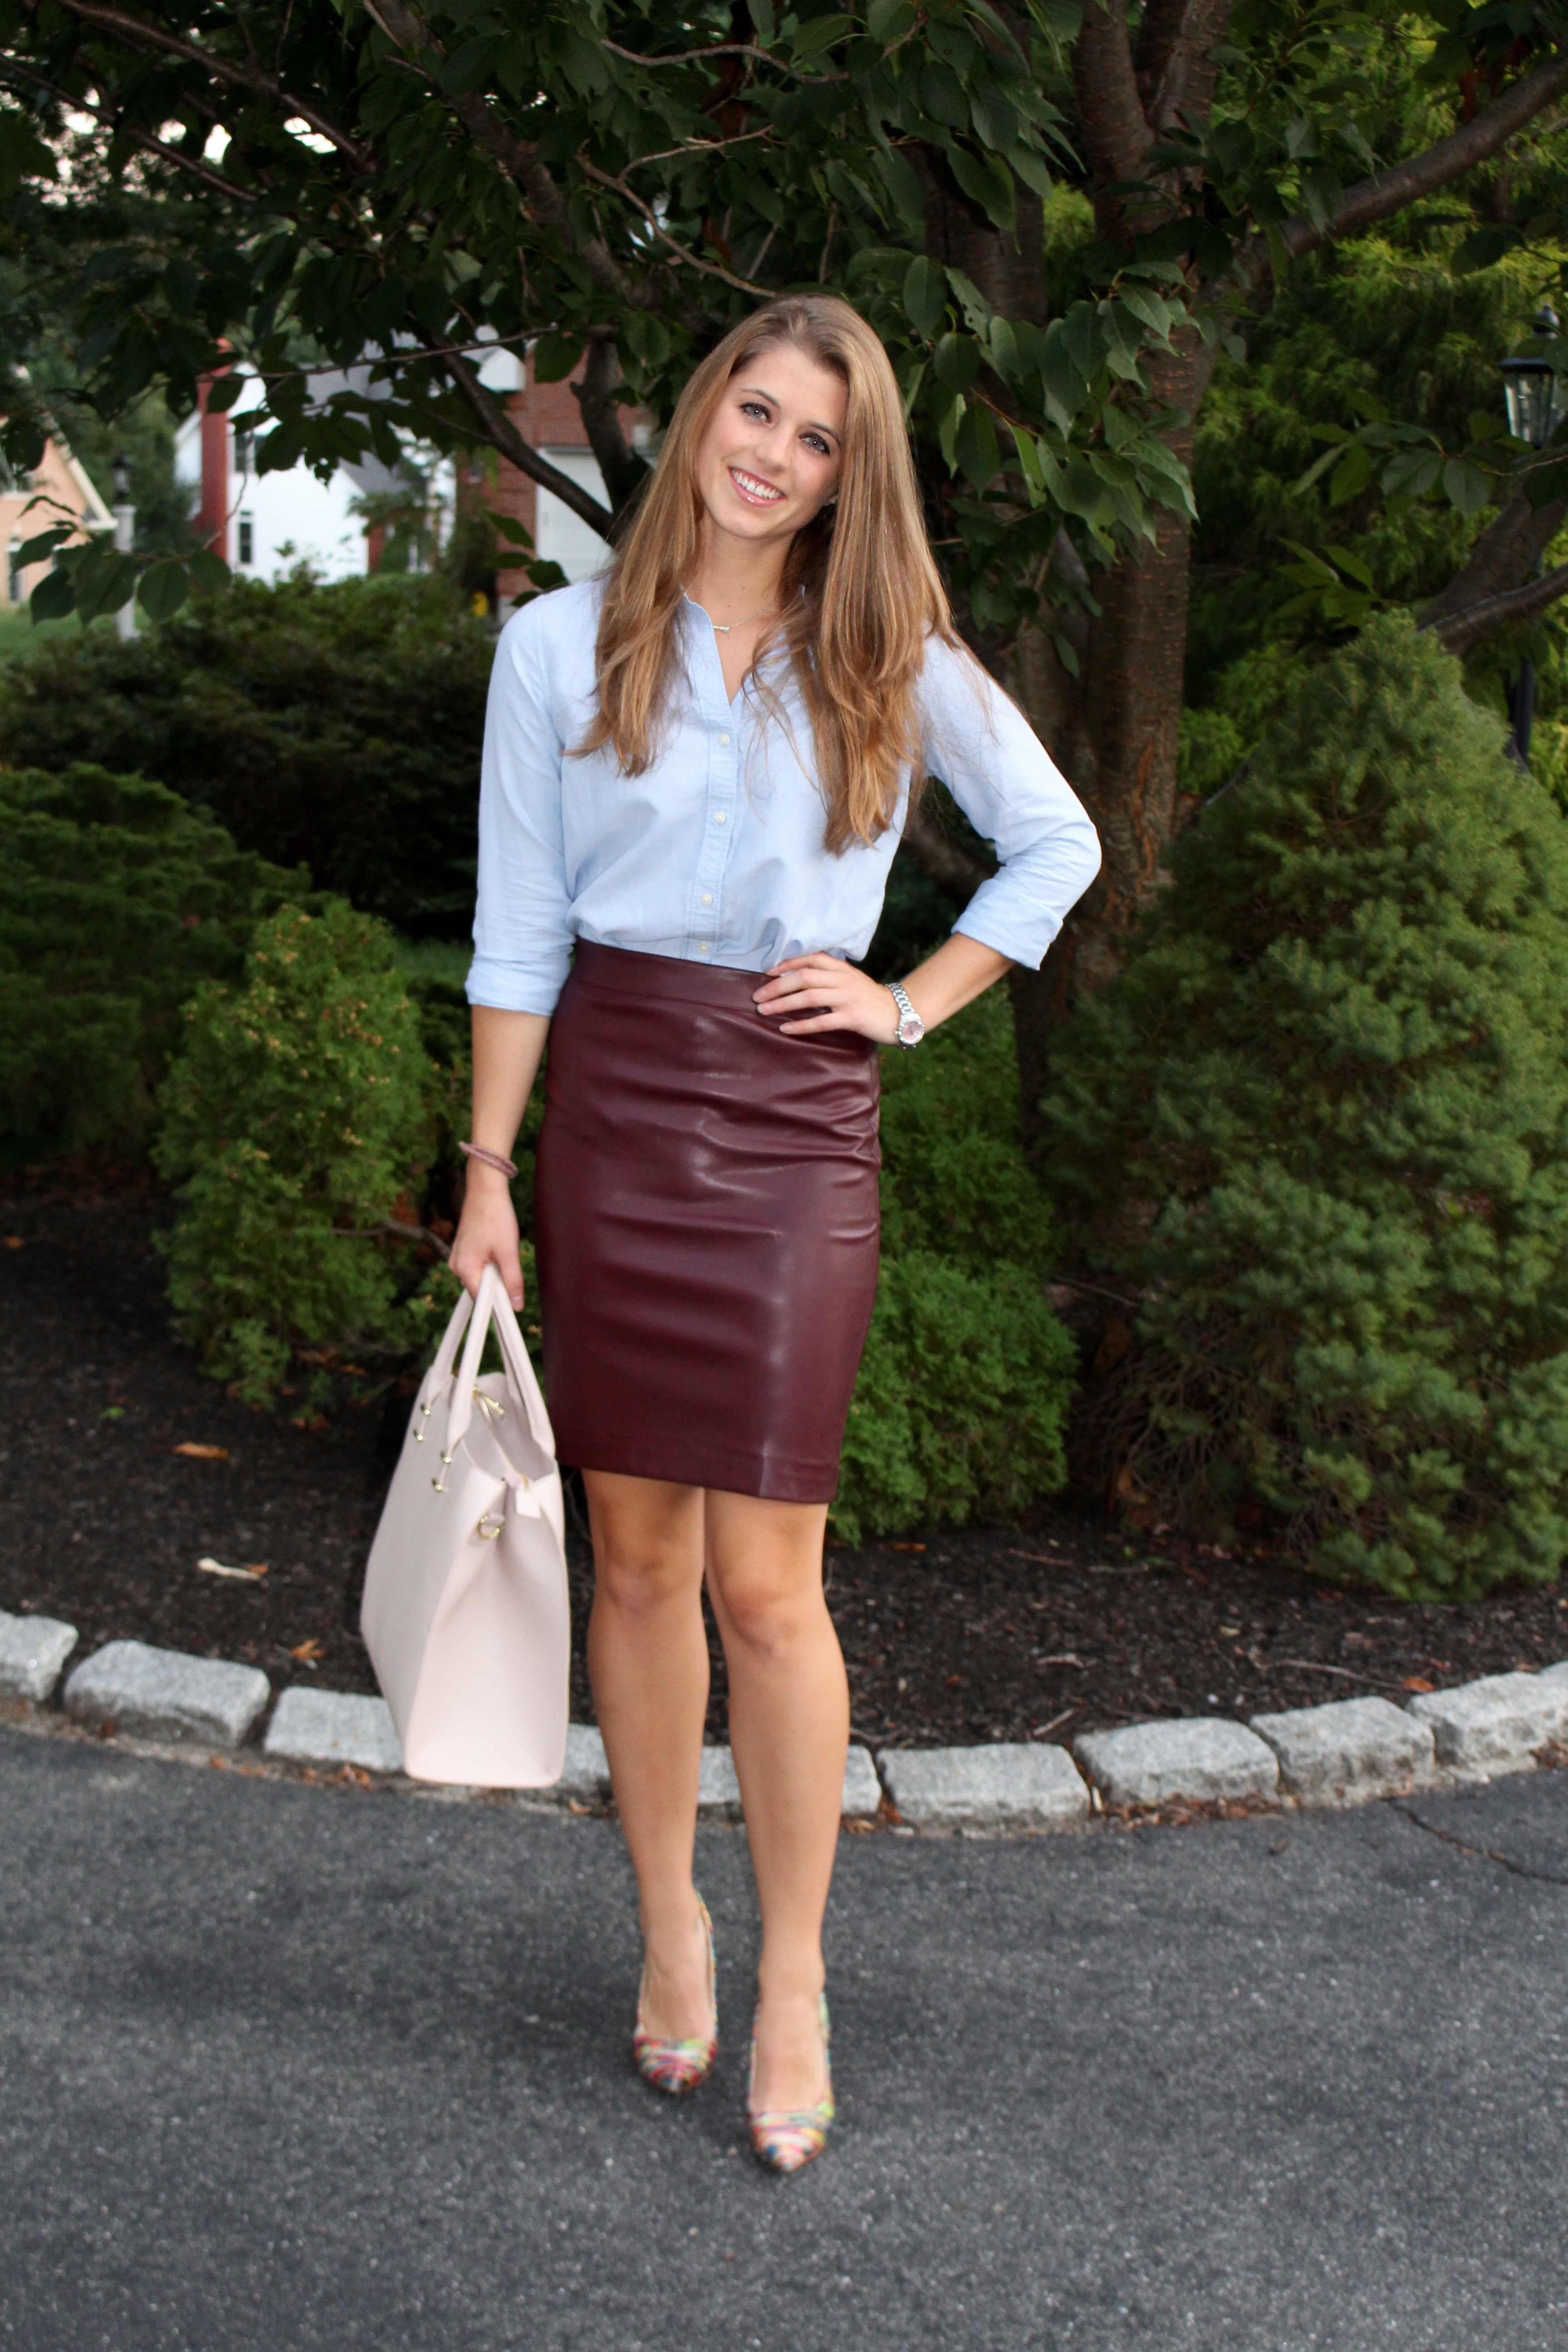 Pencil skirt outfit | The Sol Compass